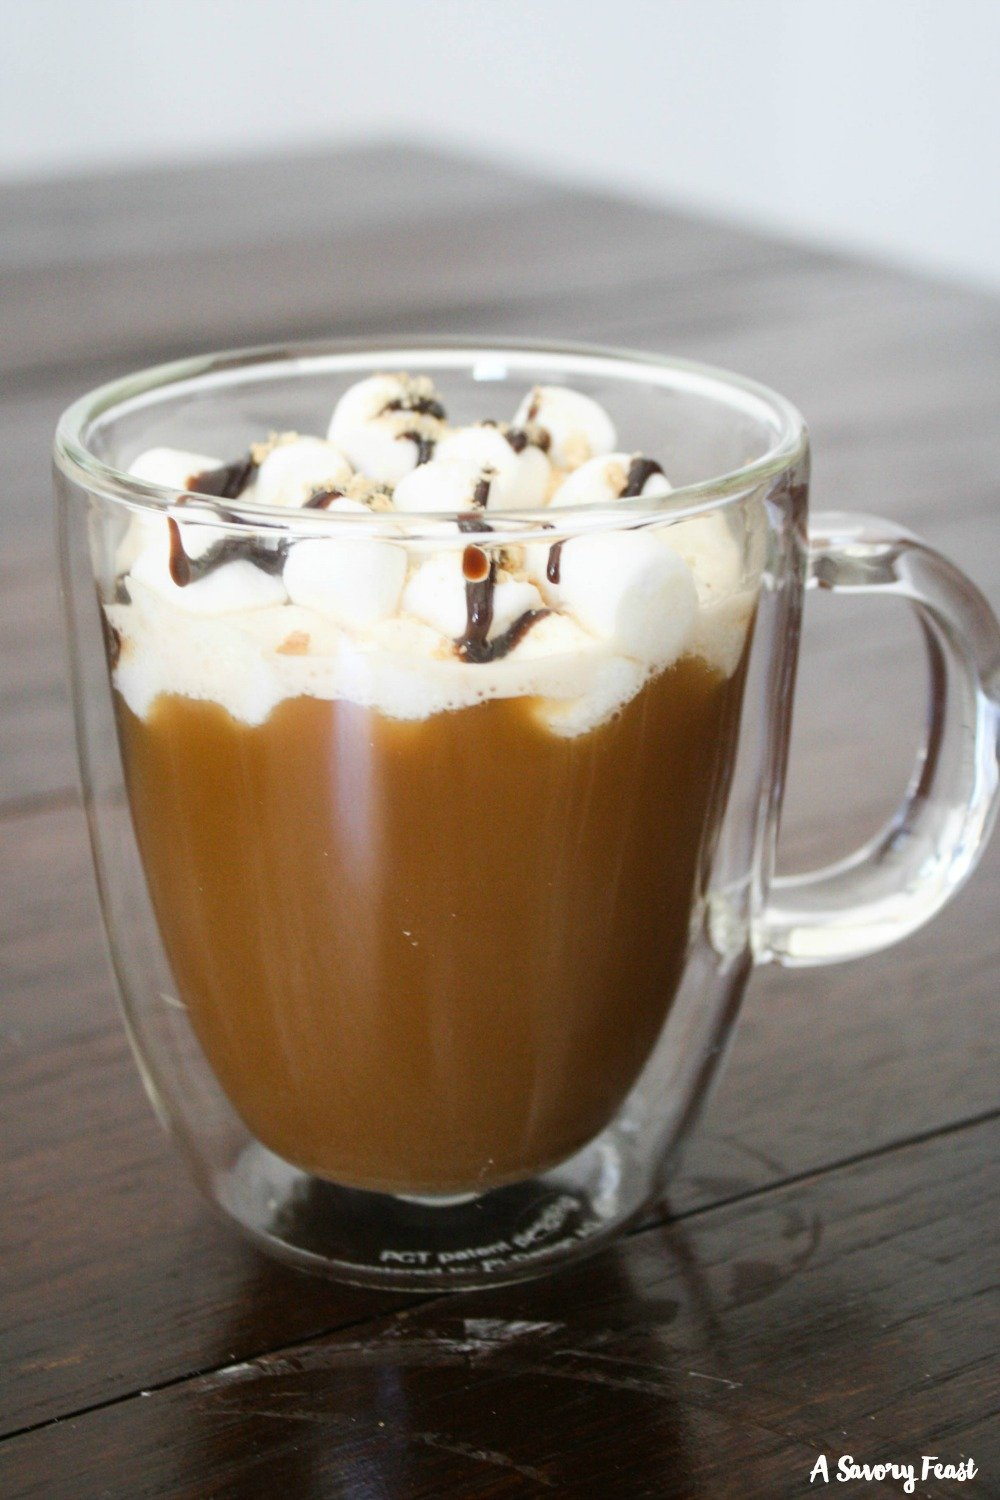 Make this beautiful yet simple S'mores Latte at home! Start with instant coffee and add in a few ingredients to make this coffee house drink at home.